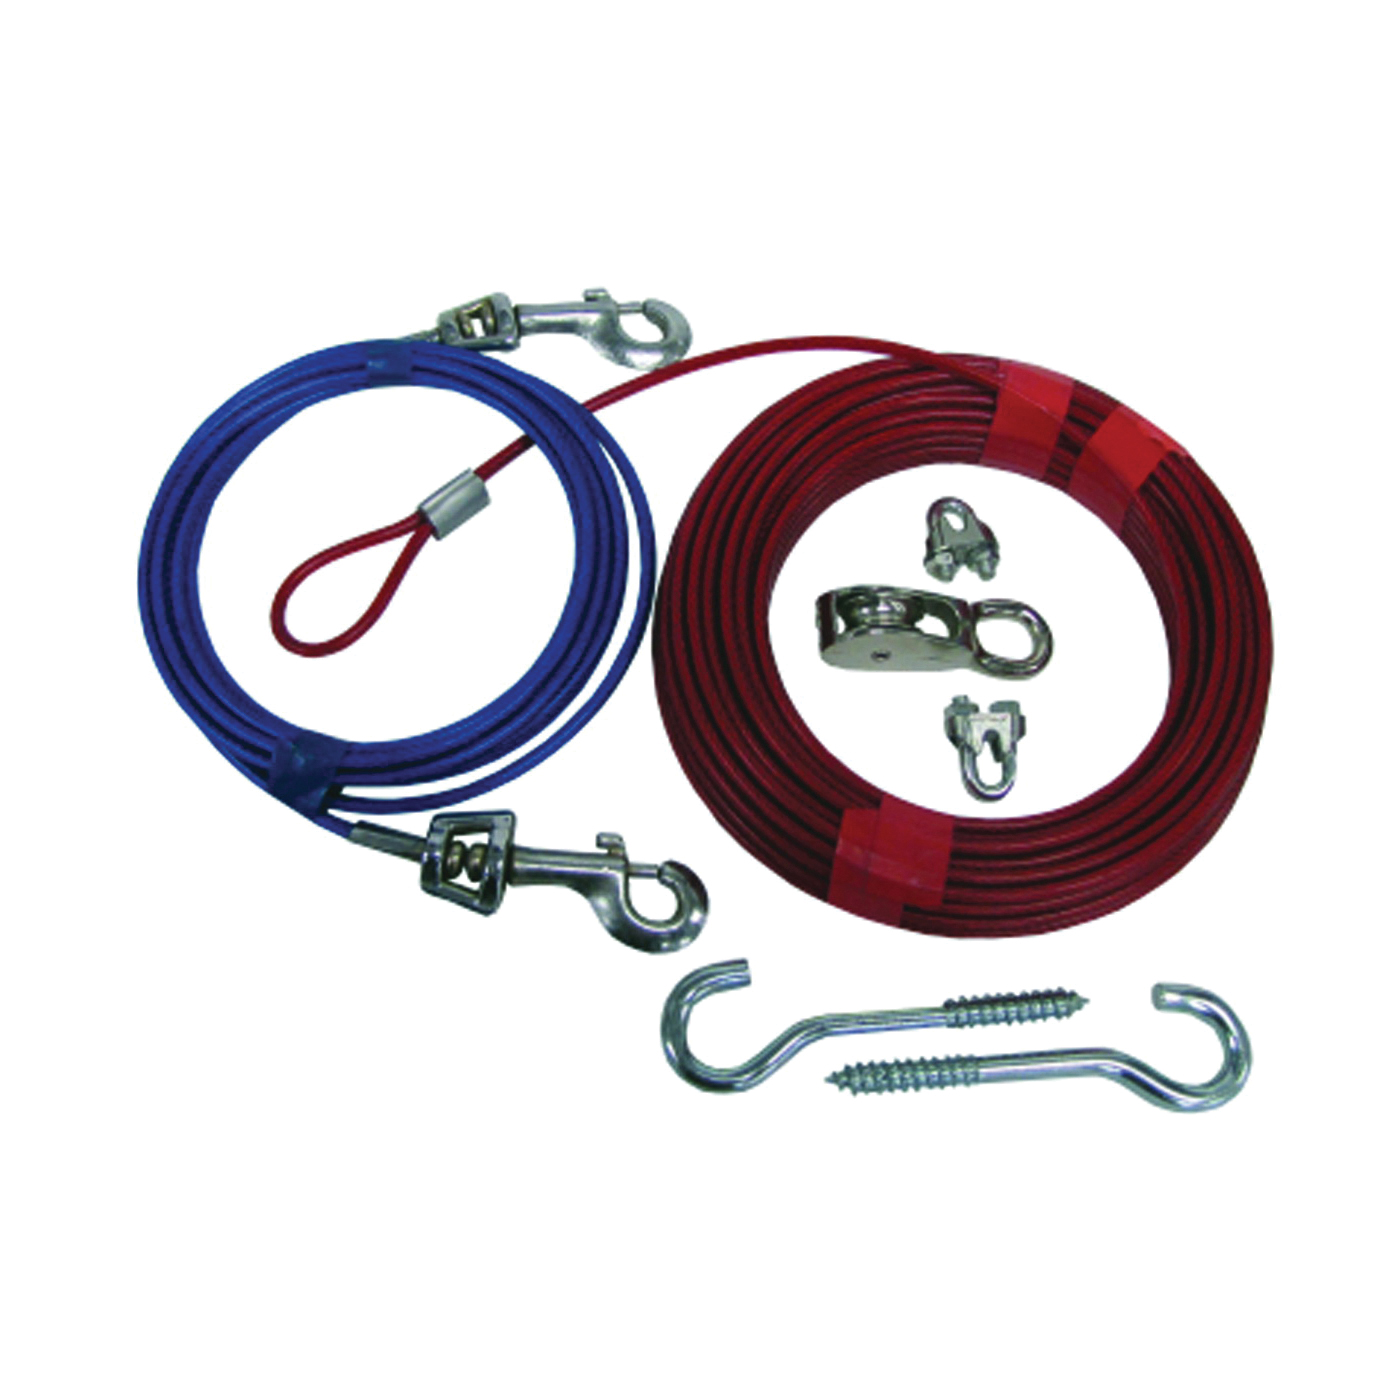 Picture of Boss Pet PDQ Q507000099 Dog Trolley System, 70 ft L Belt/Cable